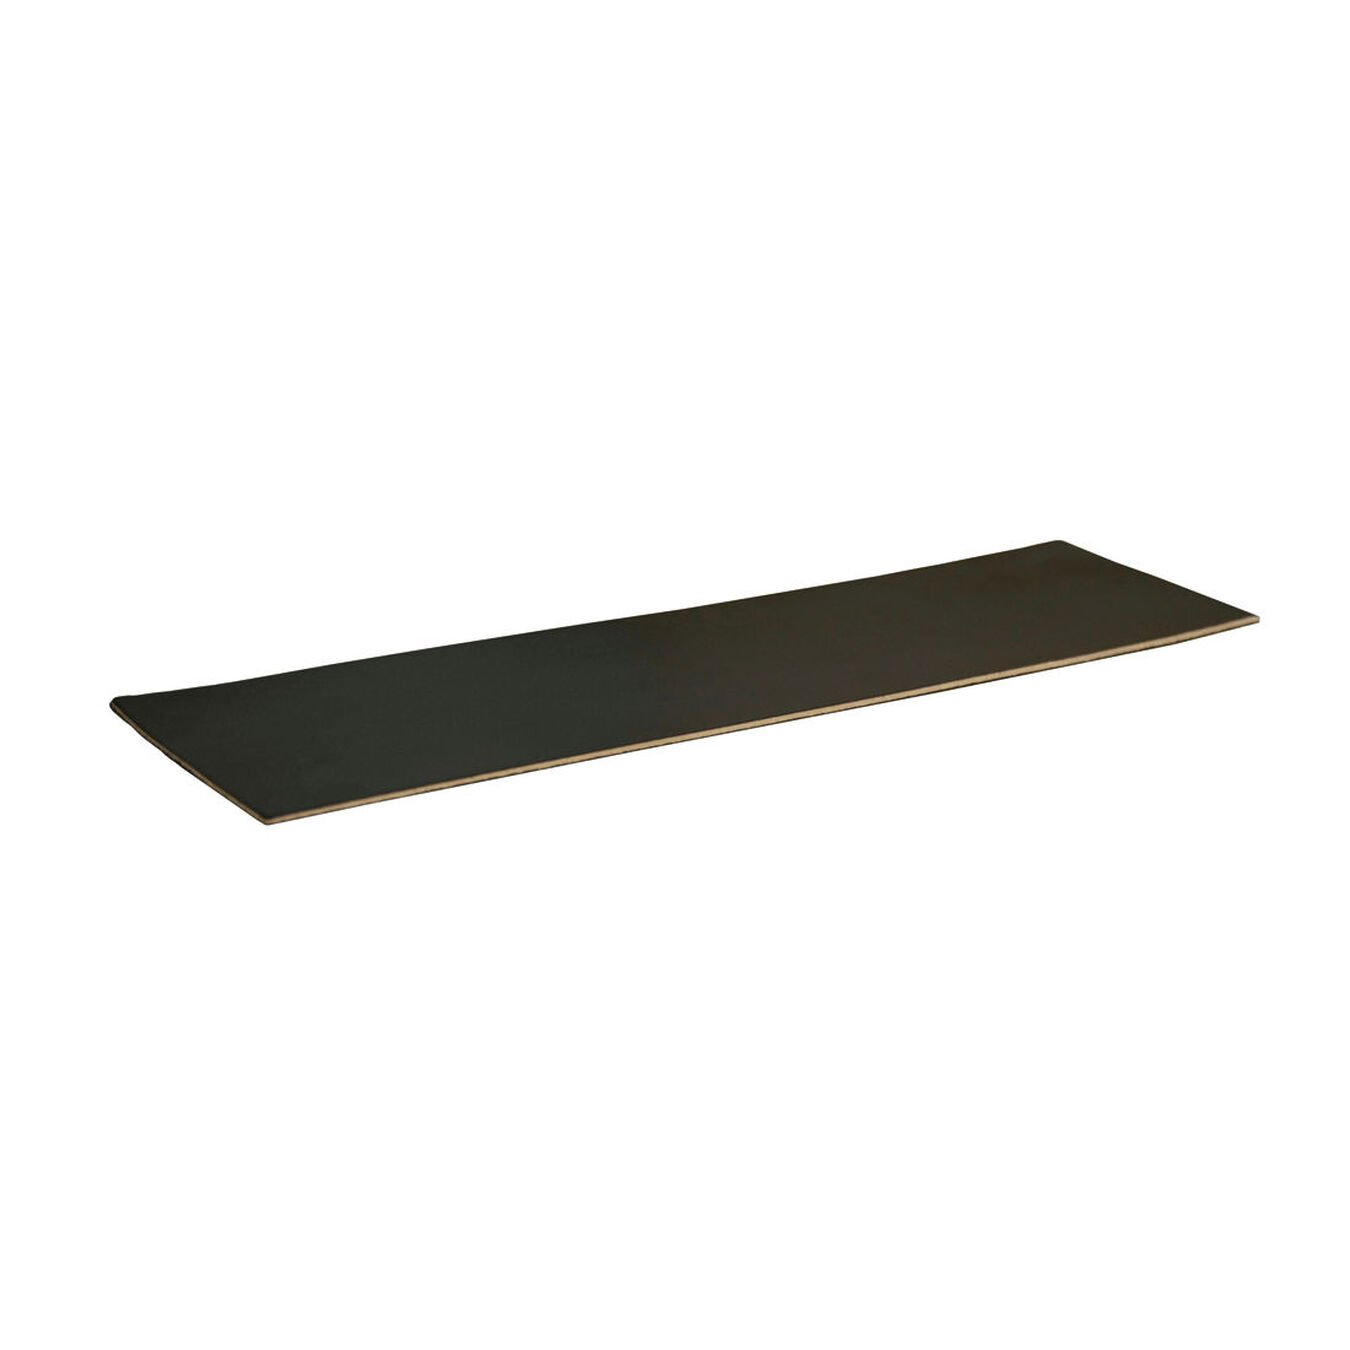 Replacement Leather Strop for Stopping Block,,large 1